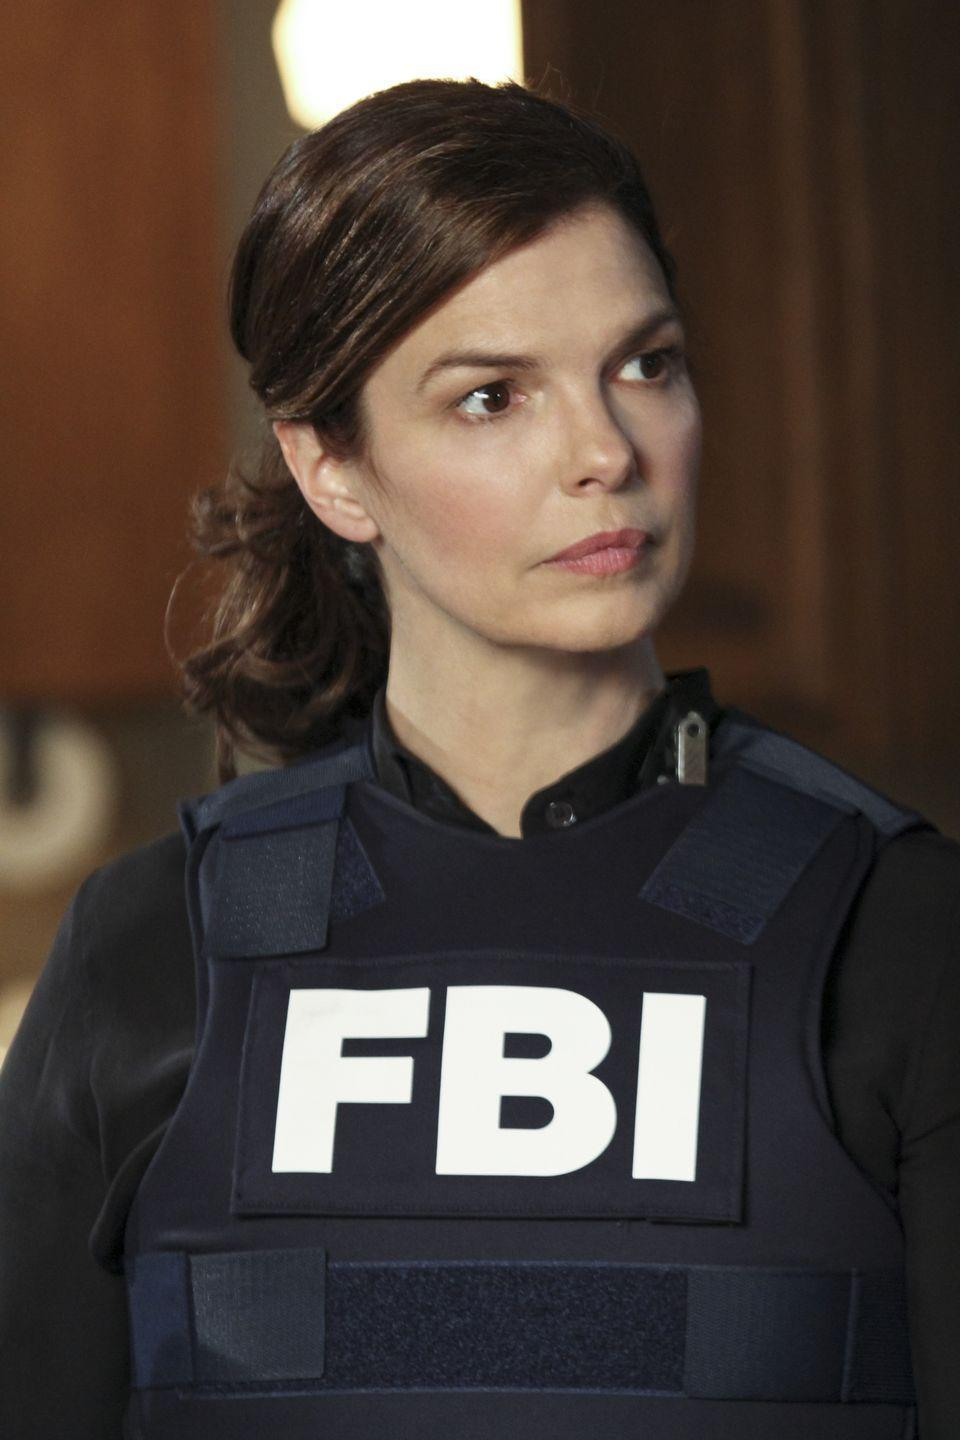 "<p>After Emily Prentiss (Paget Brewster) left the team for a job at Interpol, linguistics specialist Alex Blake, played by Jeanne Tripplehorn, joined the BAU for two seasons. </p><p>""The aspect I'm truly surprised about—given that the show is heading into its eight season—is the fun and warmth that is around the set,"" the former <em>Big Love </em>star told <a href=""https://www.thetvaddict.com/2012/09/26/todays-tv-addict-top-5-jeanne-tripplehorn-previews-her-intense-new-role-on-criminal-minds/"" rel=""nofollow noopener"" target=""_blank"" data-ylk=""slk:TV Addict"" class=""link rapid-noclick-resp"">TV Addict</a>. ""<em>Criminal Minds</em> is a smooth running machine. After seven seasons they've worked out all the kinks, we have a lot of laughs on set, and it's just fun to go to work.""</p>"